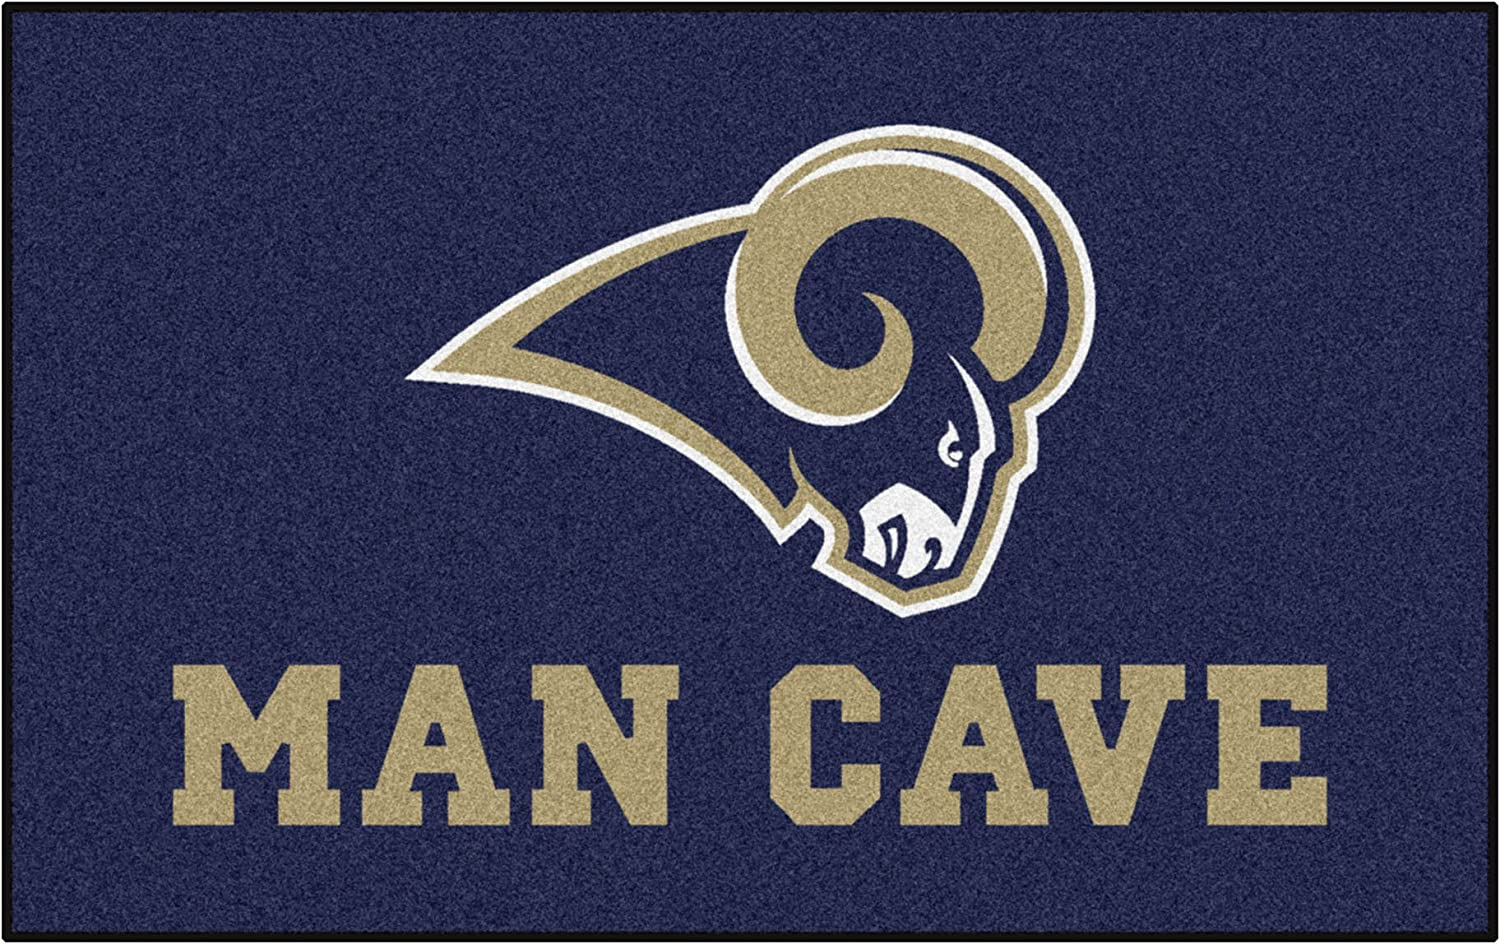 Los Angeles Rams Man Cave Ultimate Area Rug 5ft FANMATS 14374 NFL X 8ft.